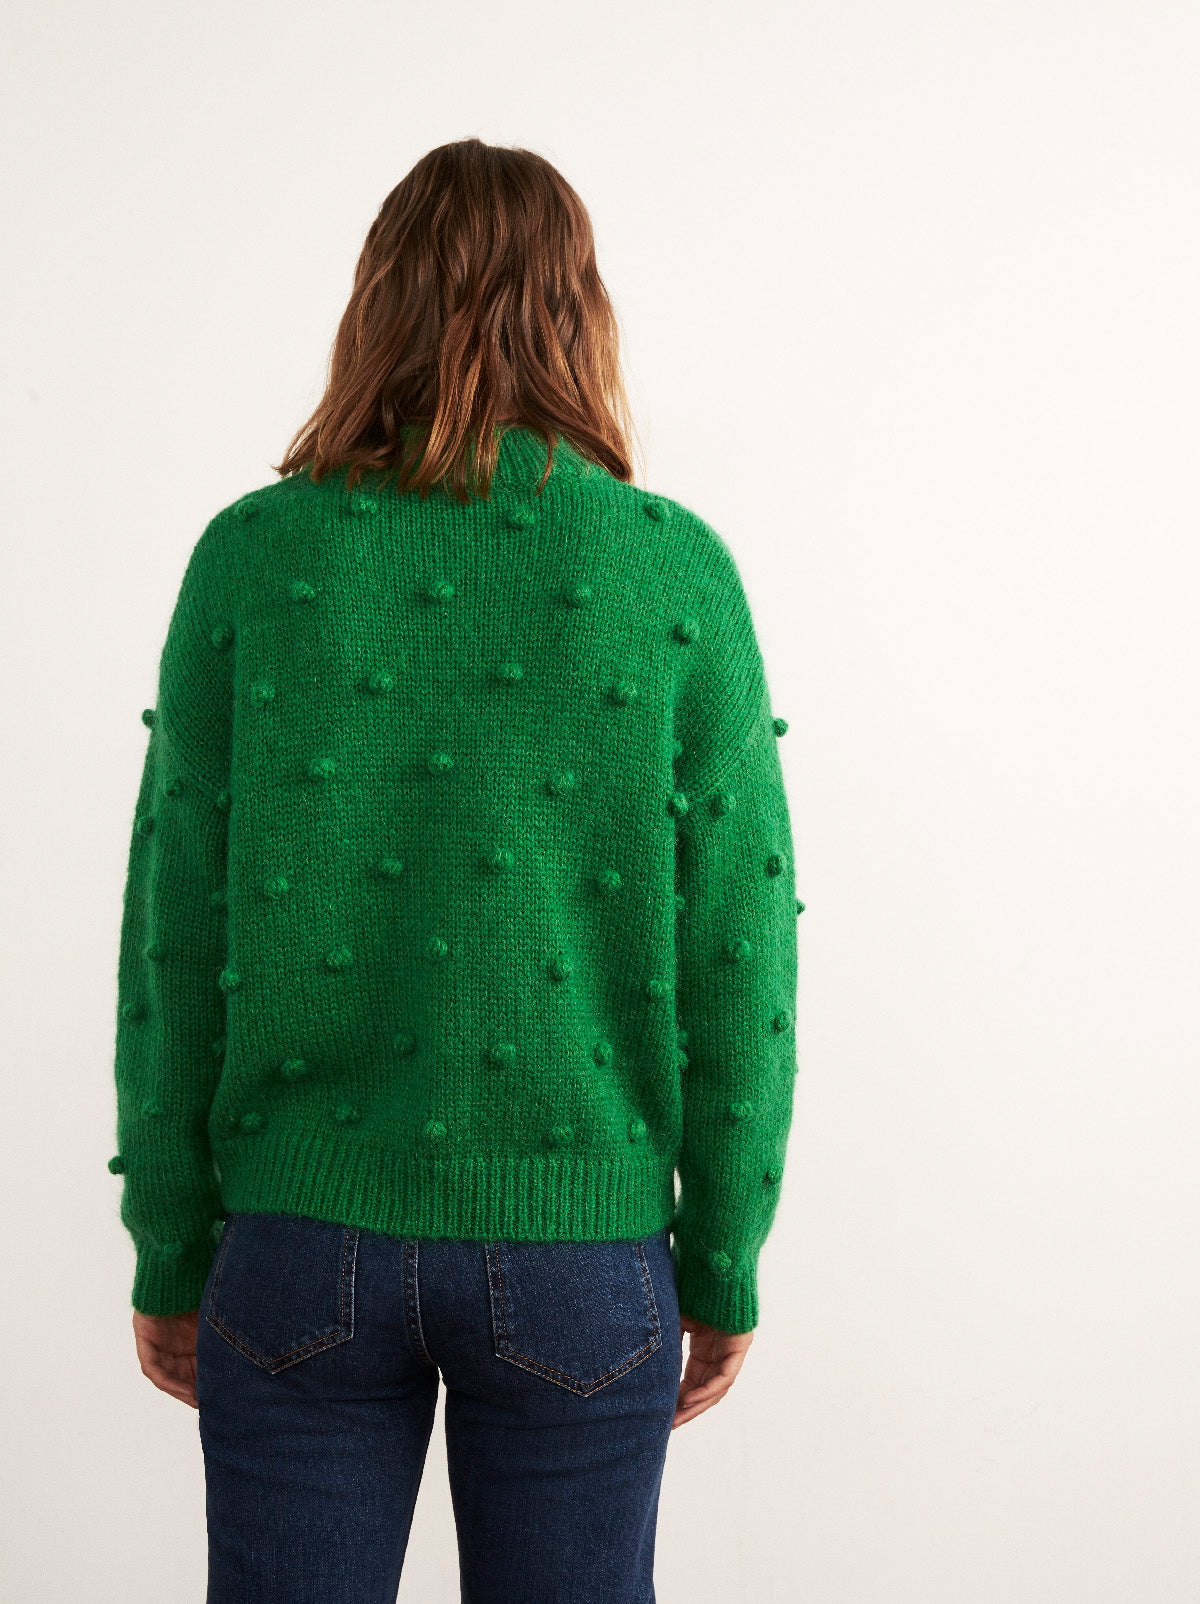 Josephine Green Mohair Bobble Jumper by KITRI Studio